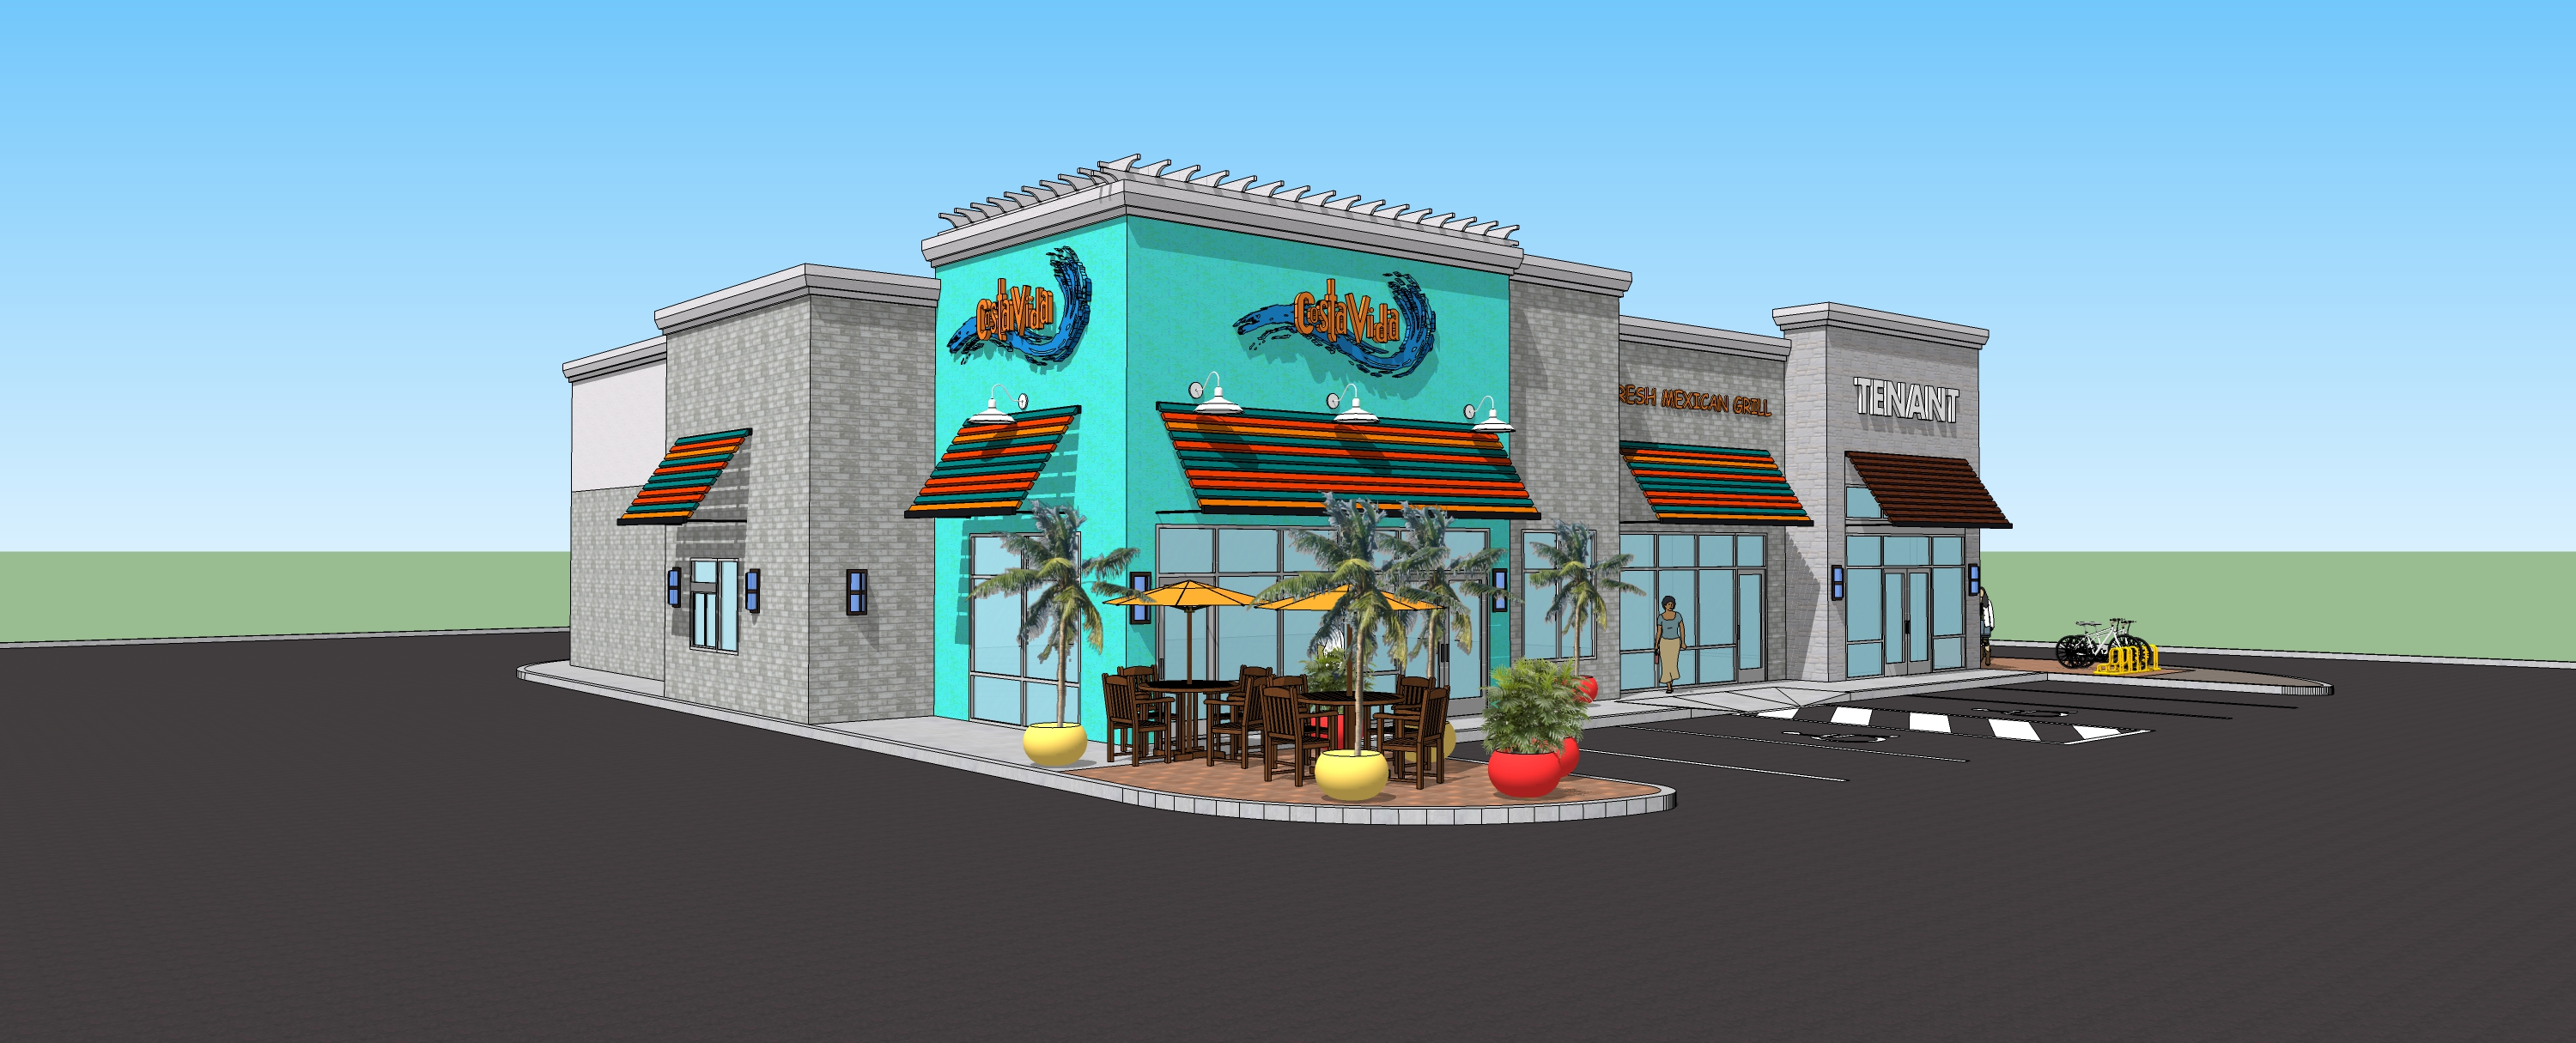 Master Car Wash >> Commercial Site Plan - Commercial Real Estate Site ...